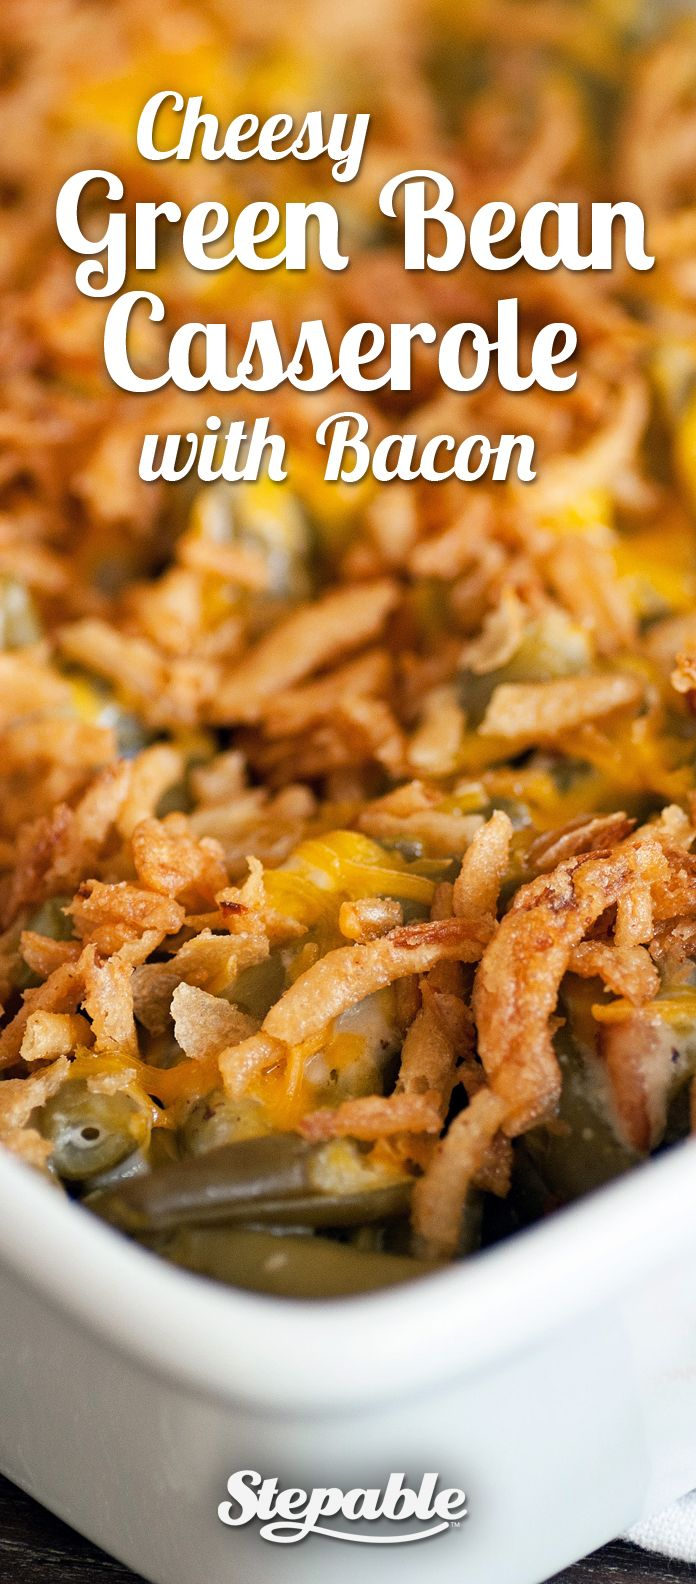 Easy Green Bean Casserole without canned cream soup ~ classic green bean casserole with a homemade sauce that makes it extra creamy!: